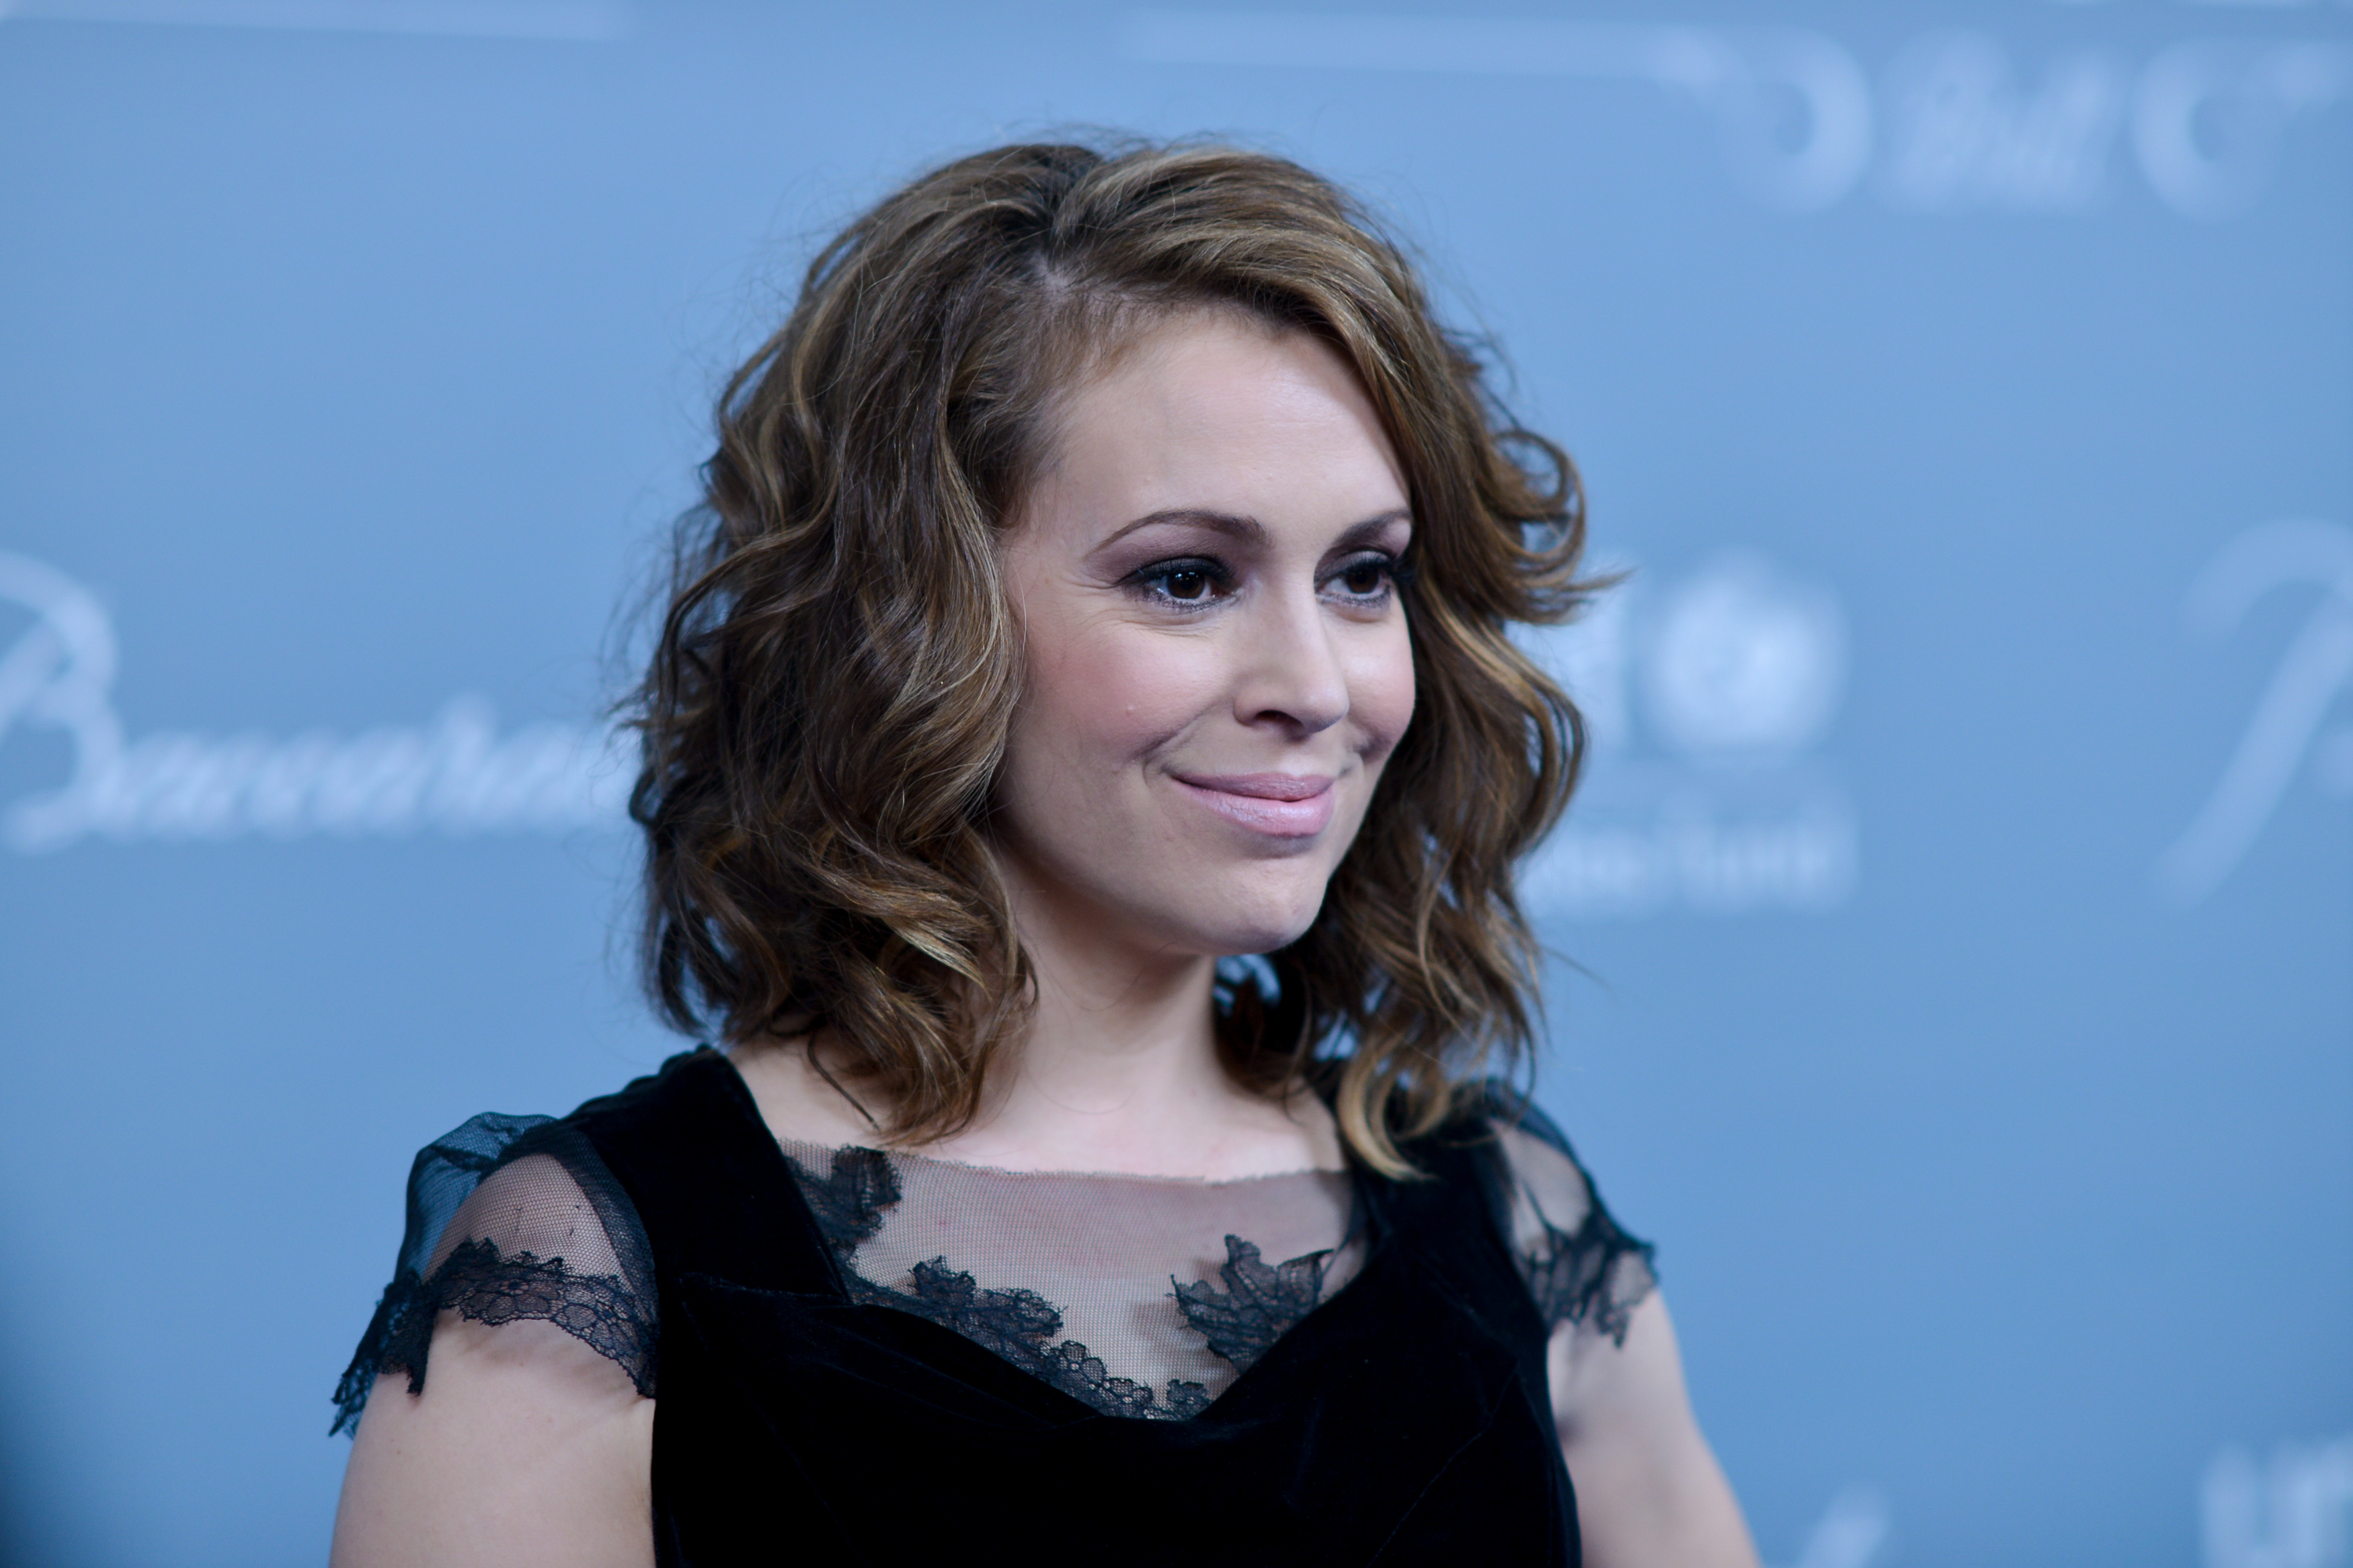 Hacked Alyssa Milano nude photos 2019